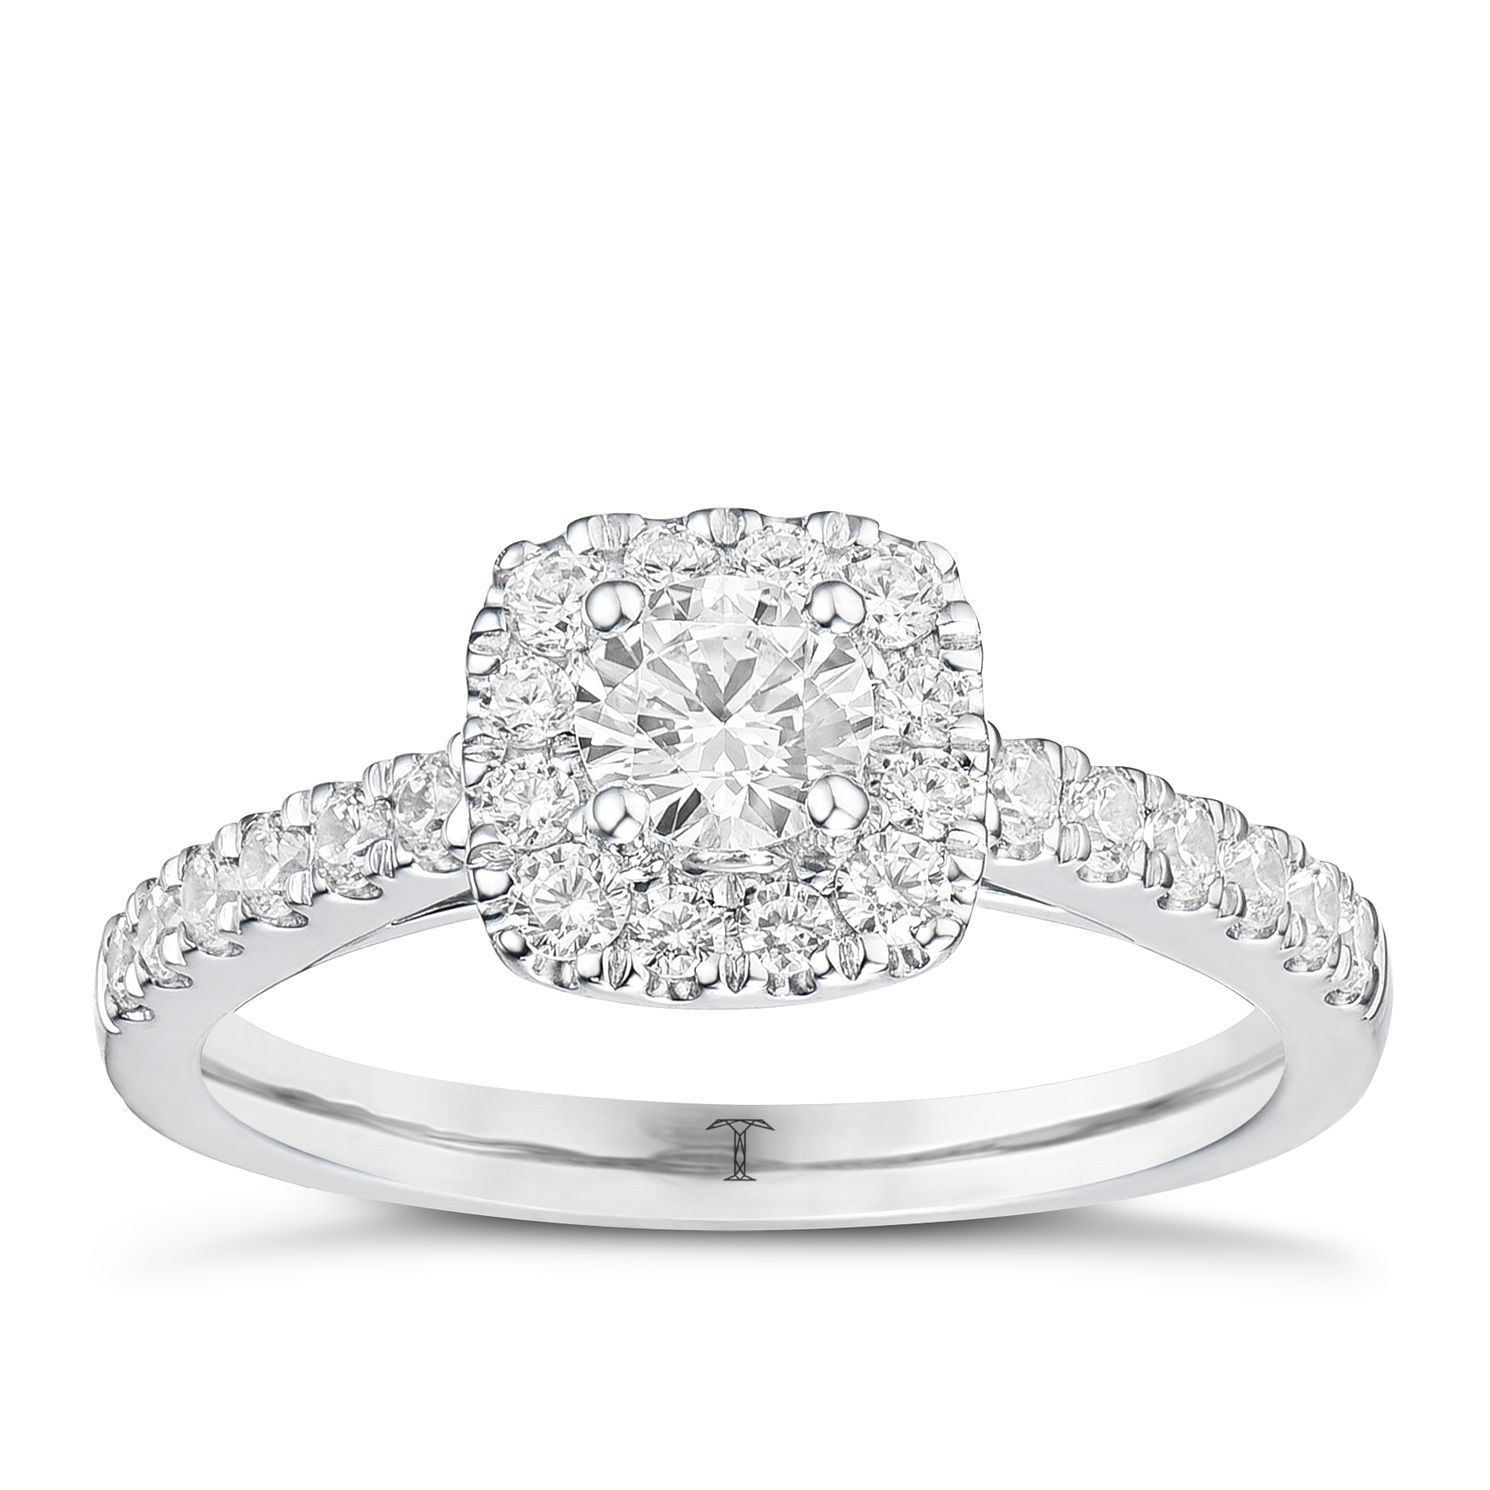 Tolkowsky Platinum 3/4ct Cushion Halo Diamond Ring - Product number 8414343